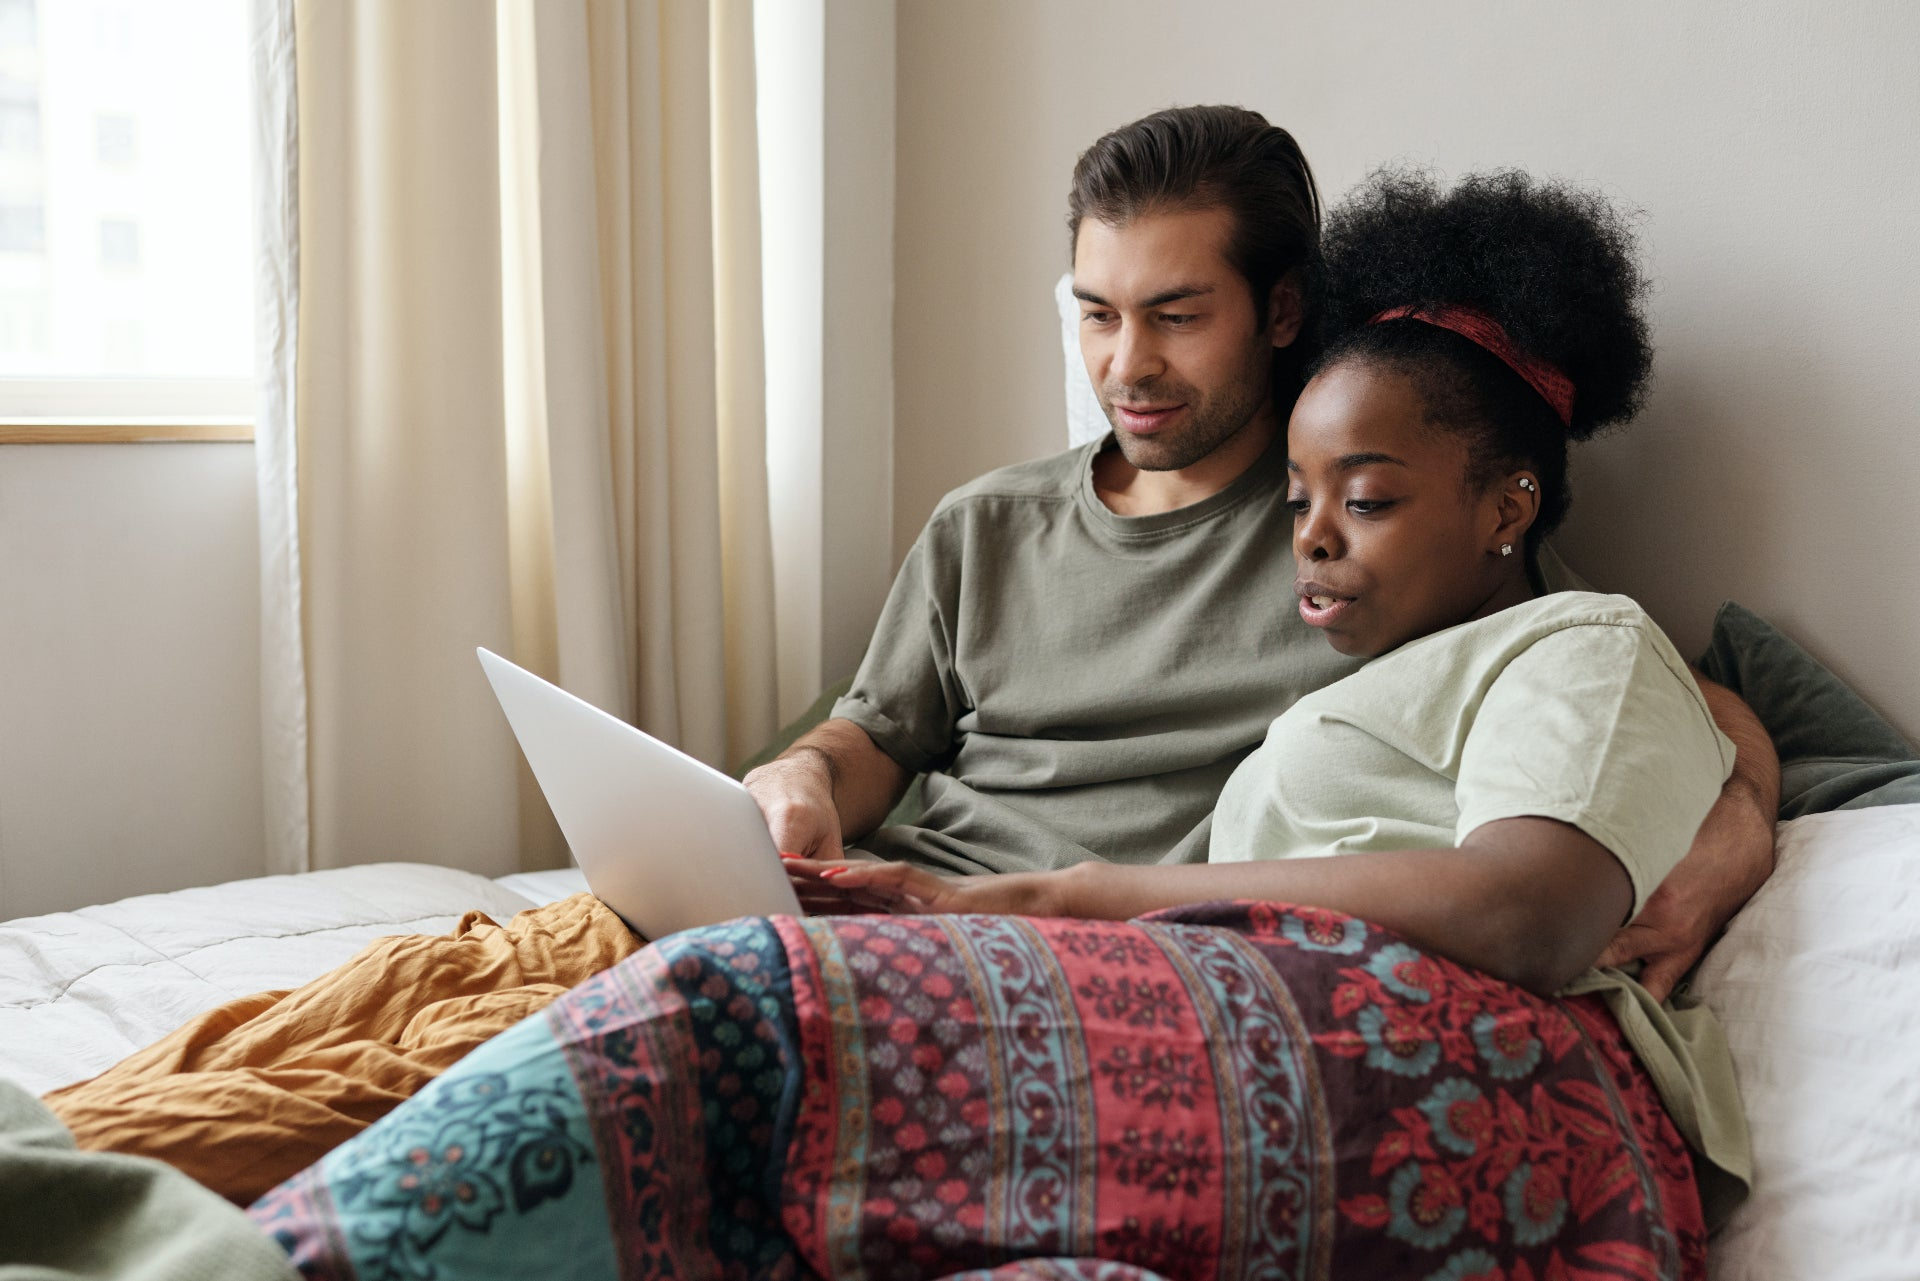 A young couple sits in bed together looking at a laptop